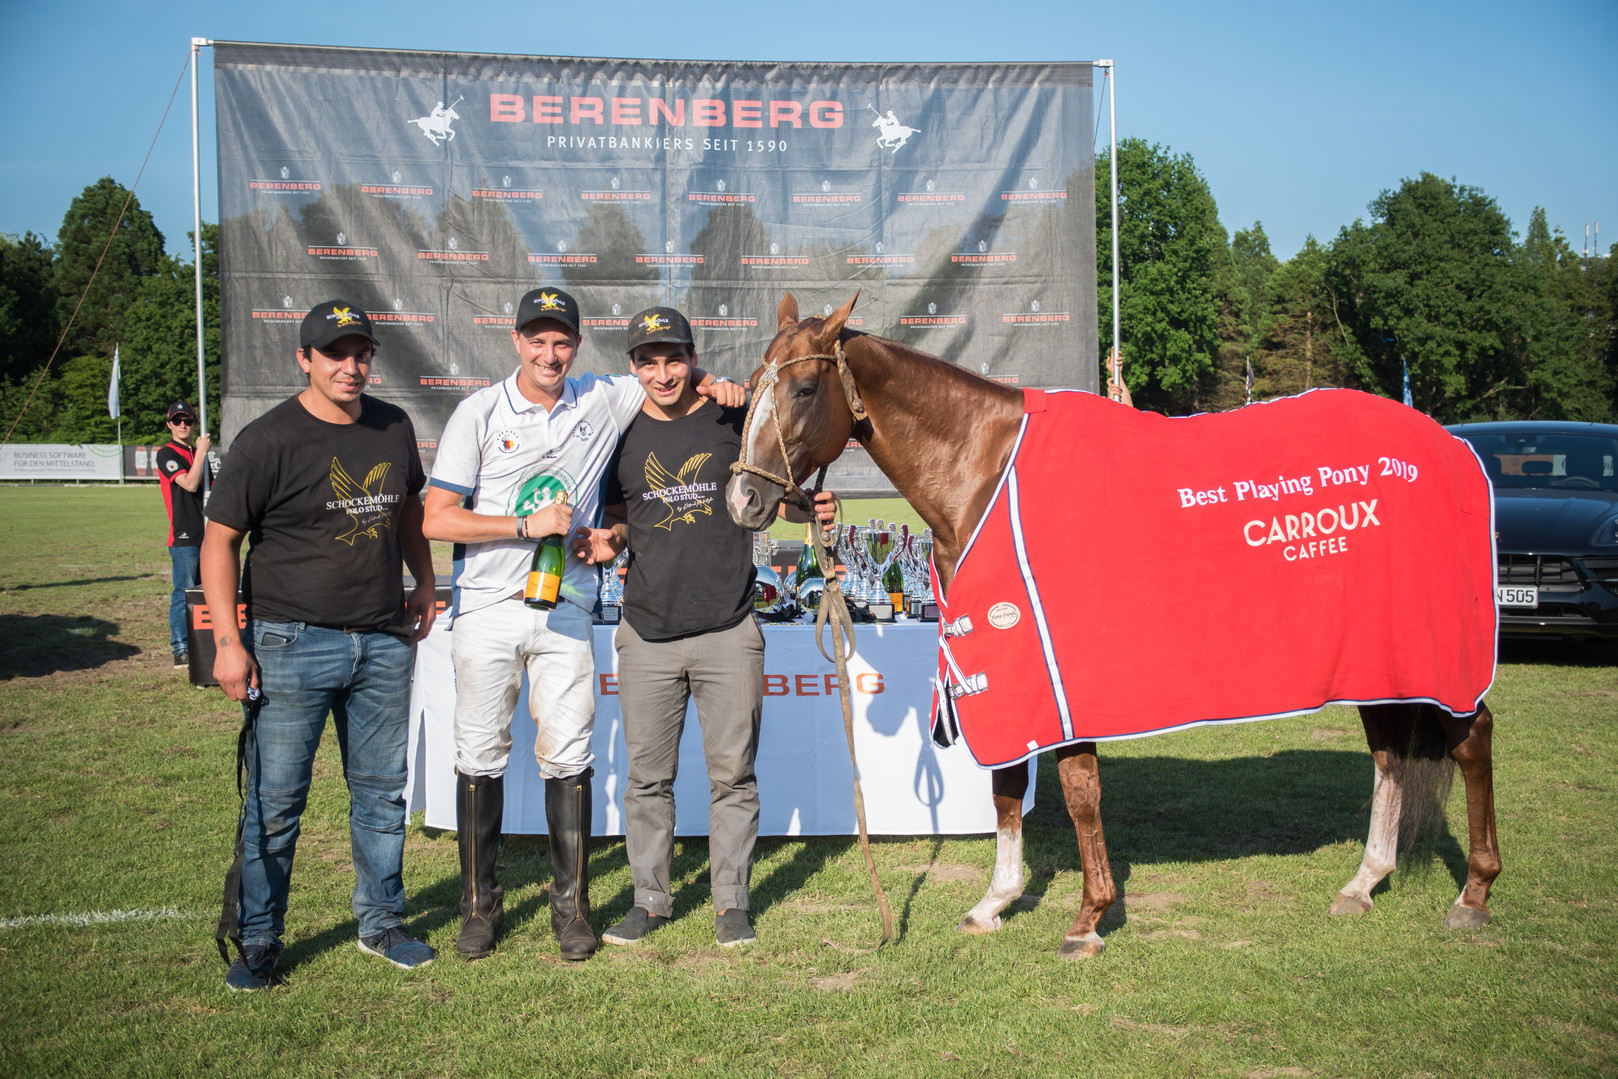 Best Playing Pony Hamburg, TAITA NISSAN